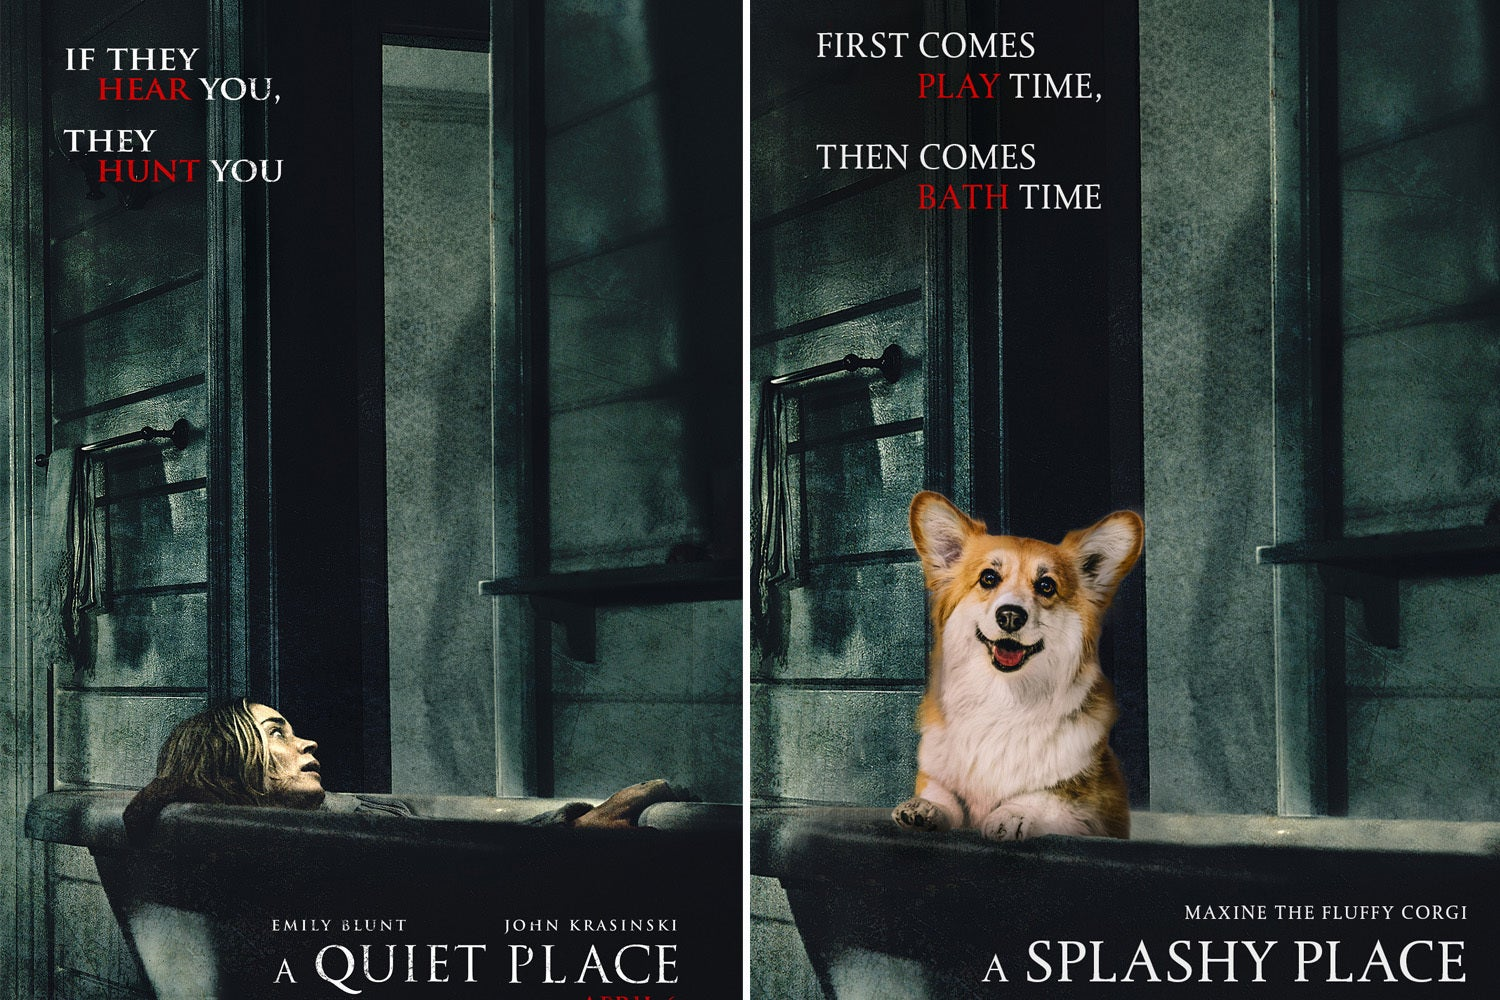 These Corgi-Inspired Movie Posters Are So Cute That Youll Wanna Thank The Academy